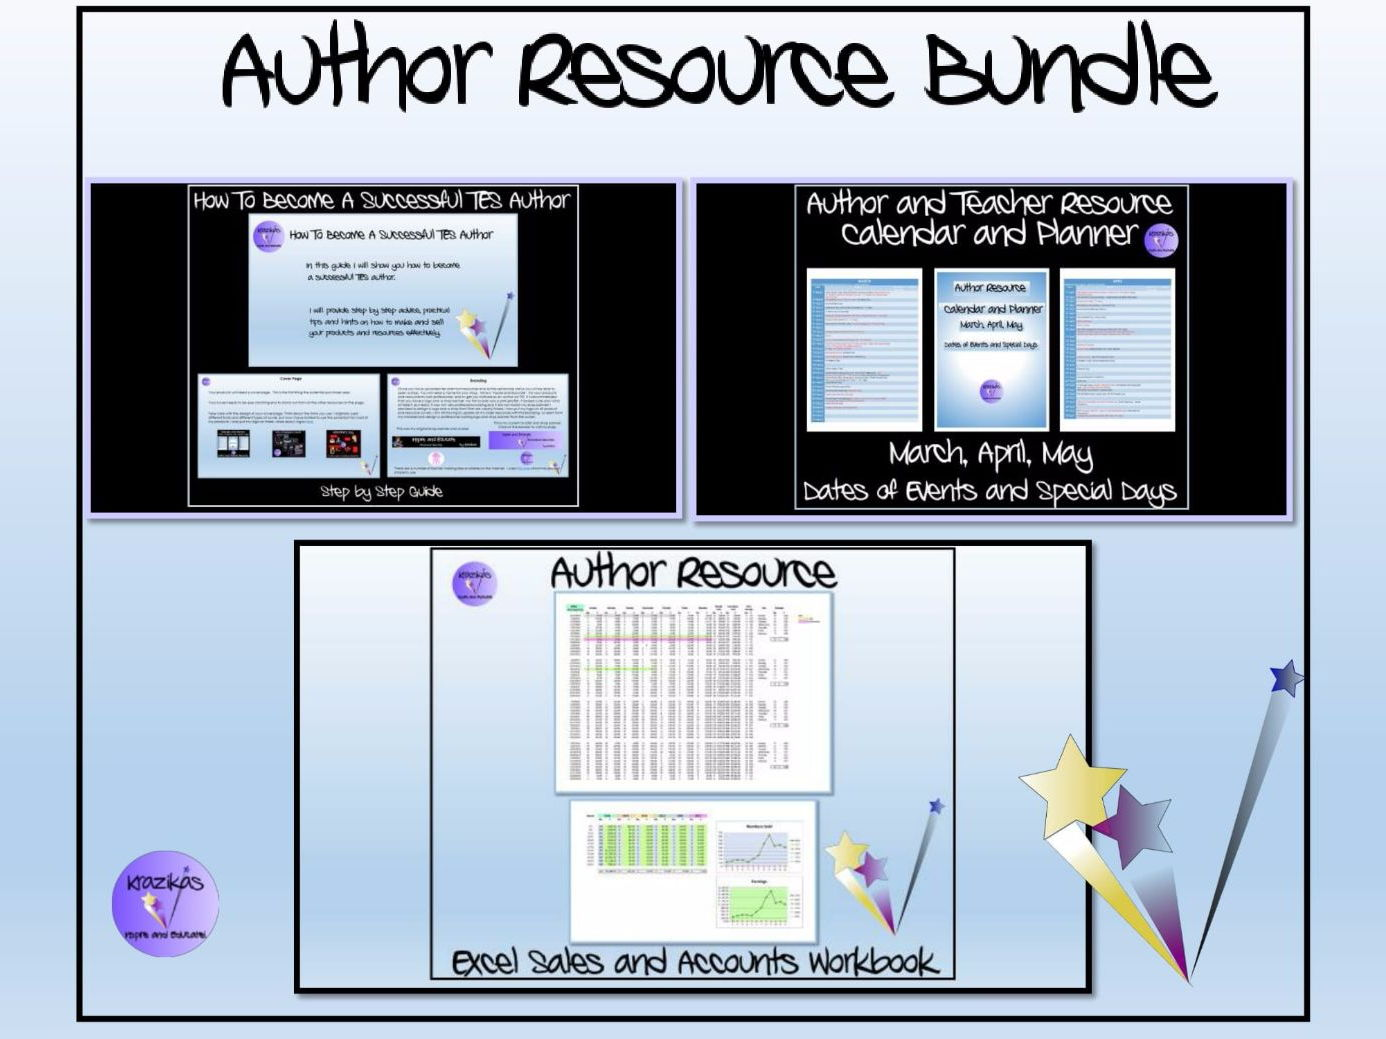 TES Authors' Resource Bundle by a Top Selling Author - Guide - Hints and Tips, Excel Sales and Accounts Tracker, Author Calendar and Planner